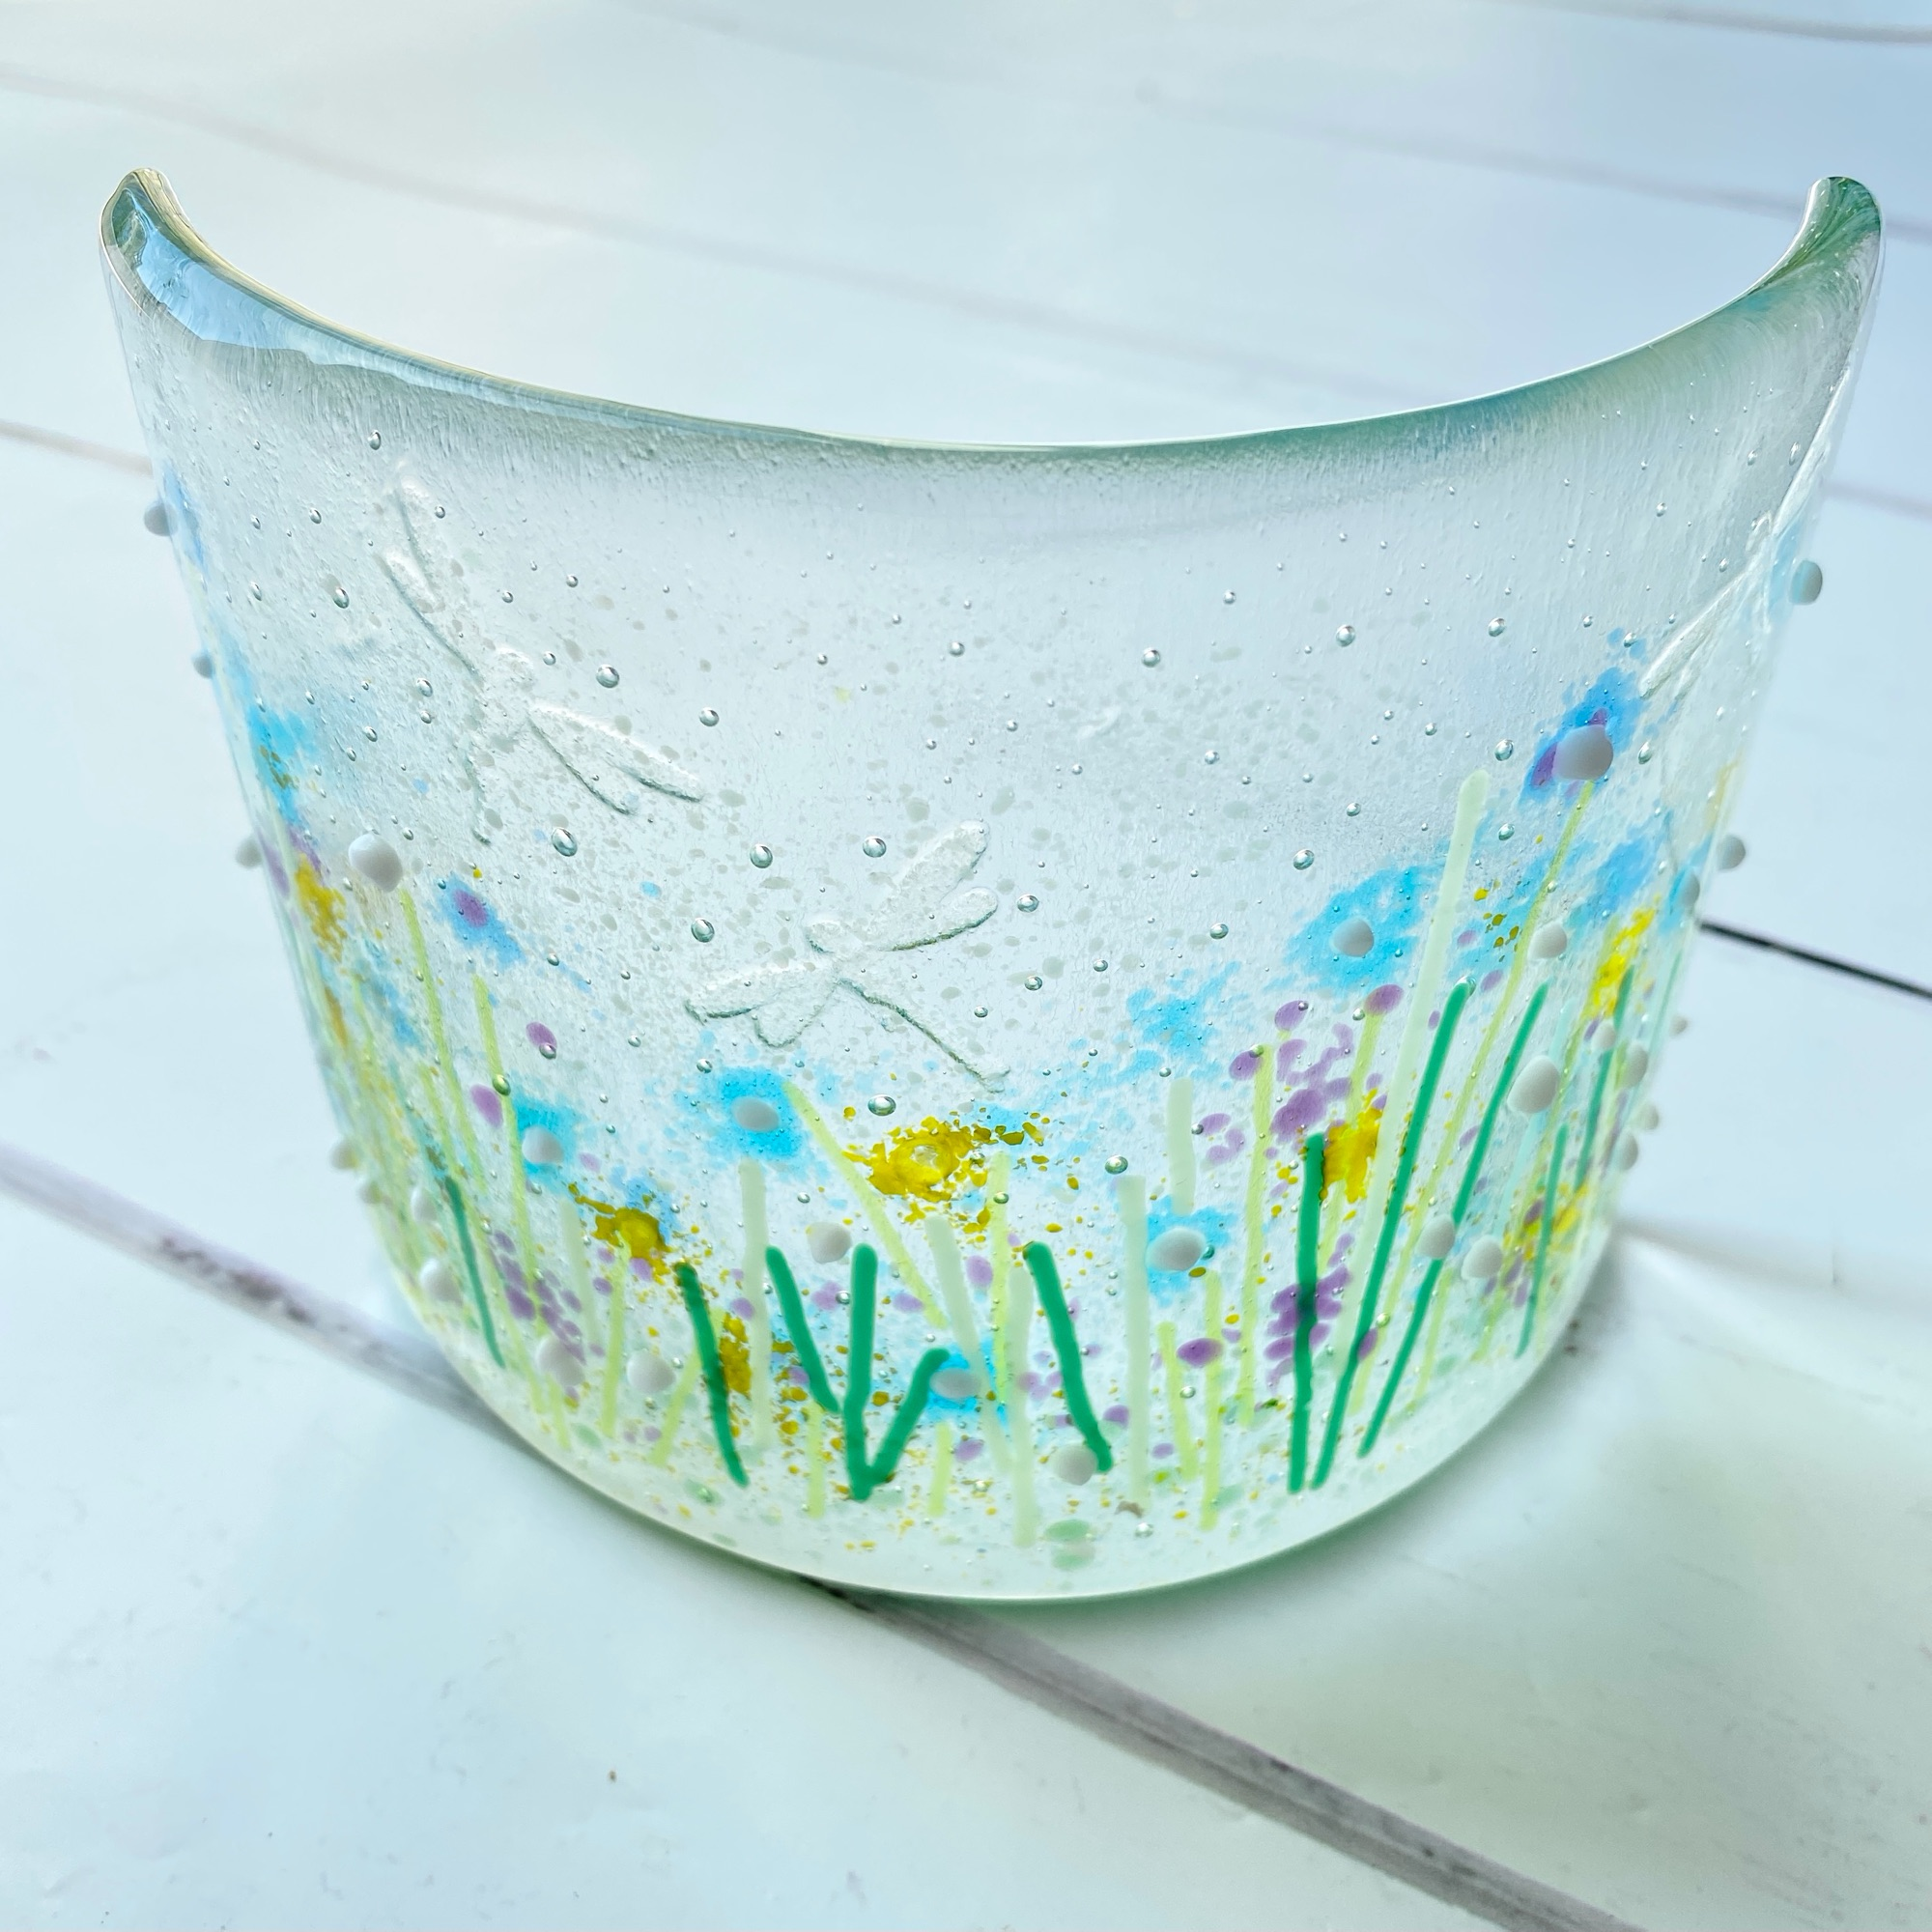 Make at home fused glass craft kit for adults  | Red Brick Glass by Wendy Jeavons